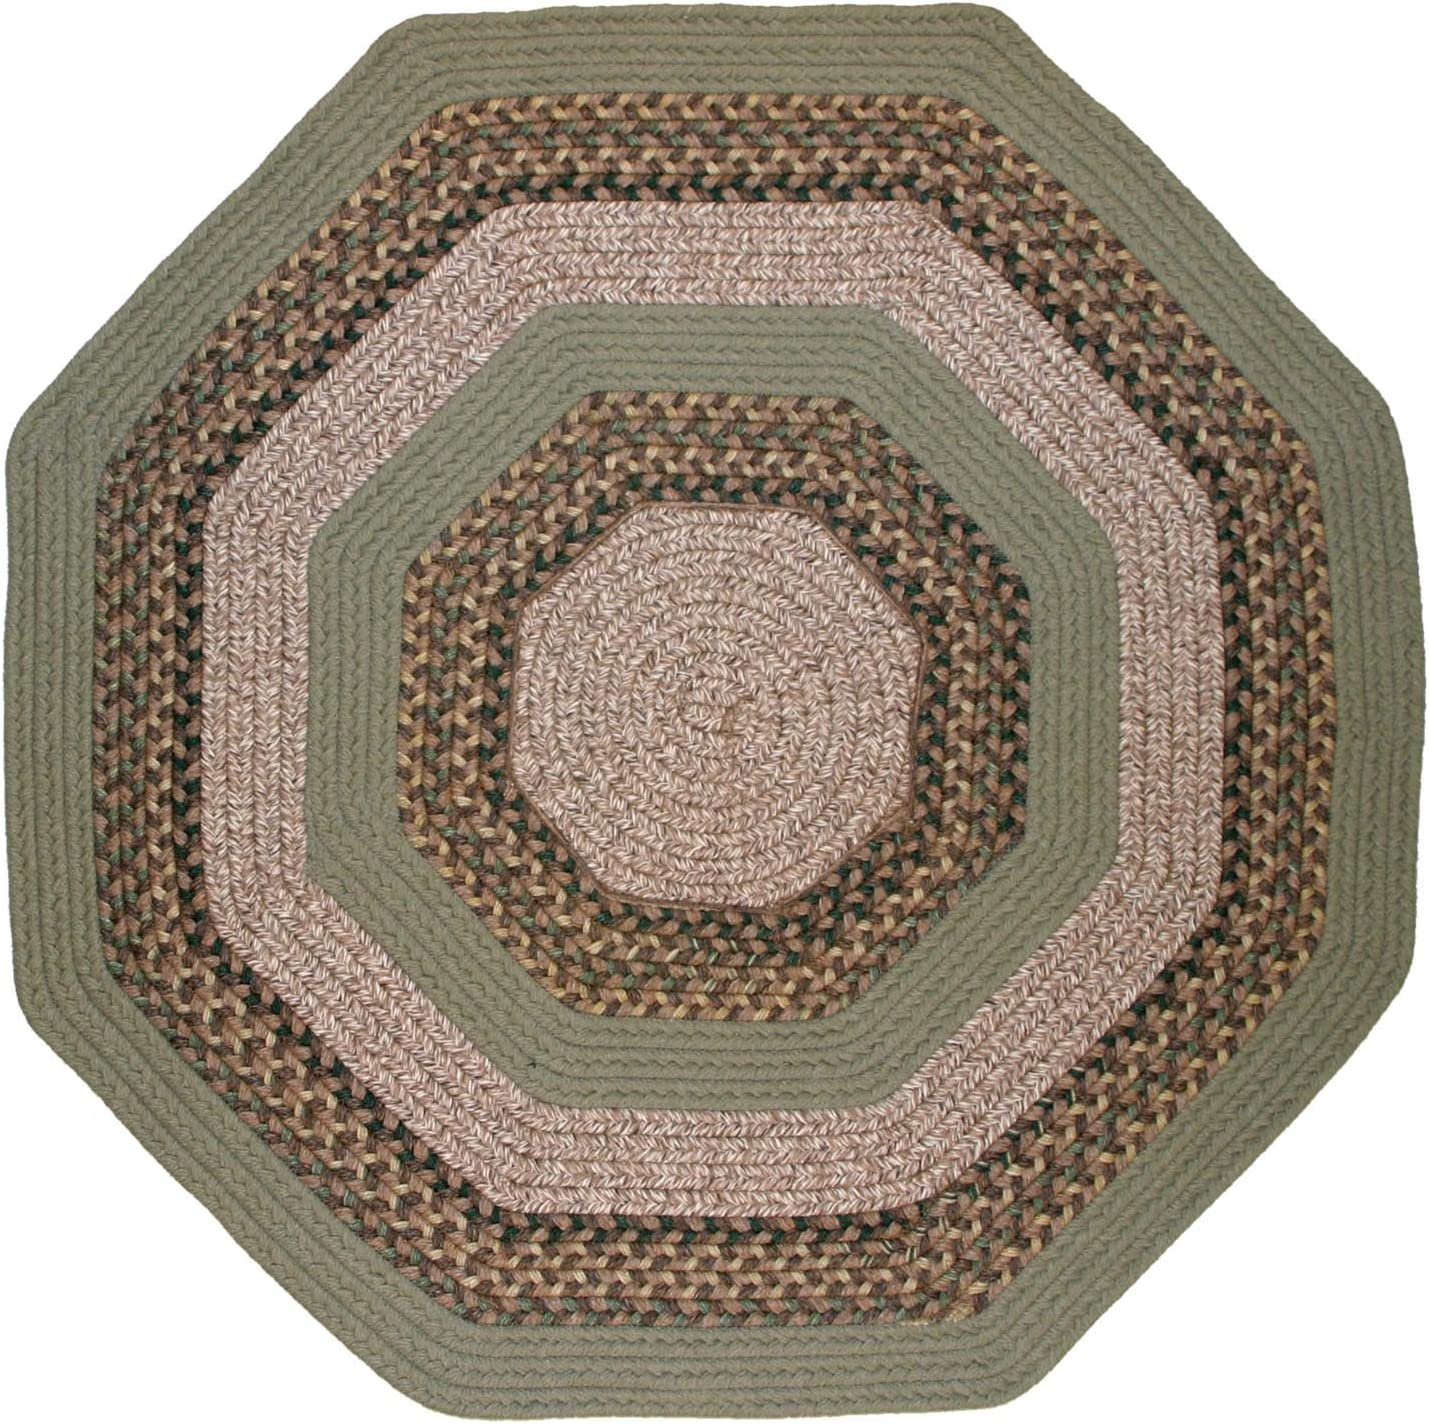 Thorndike Mills Beantown Braided Rug 10' x 10' Octagon Boston Garden Green